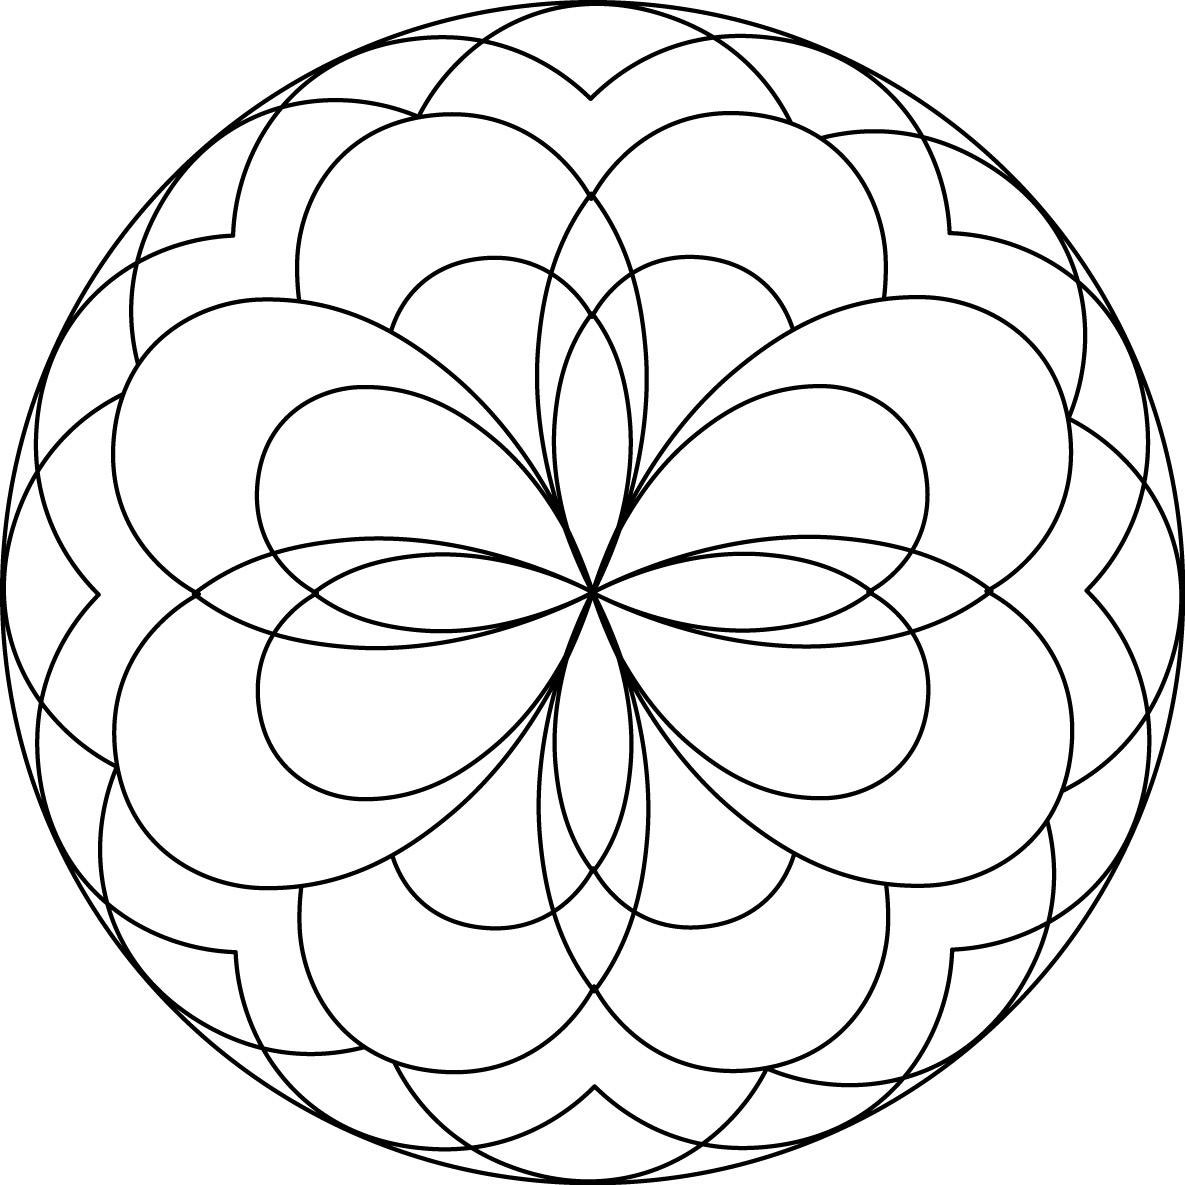 Mandala Coloring Pages For Kids Free Mandala Coloring Pages For Kids  Just Colorings